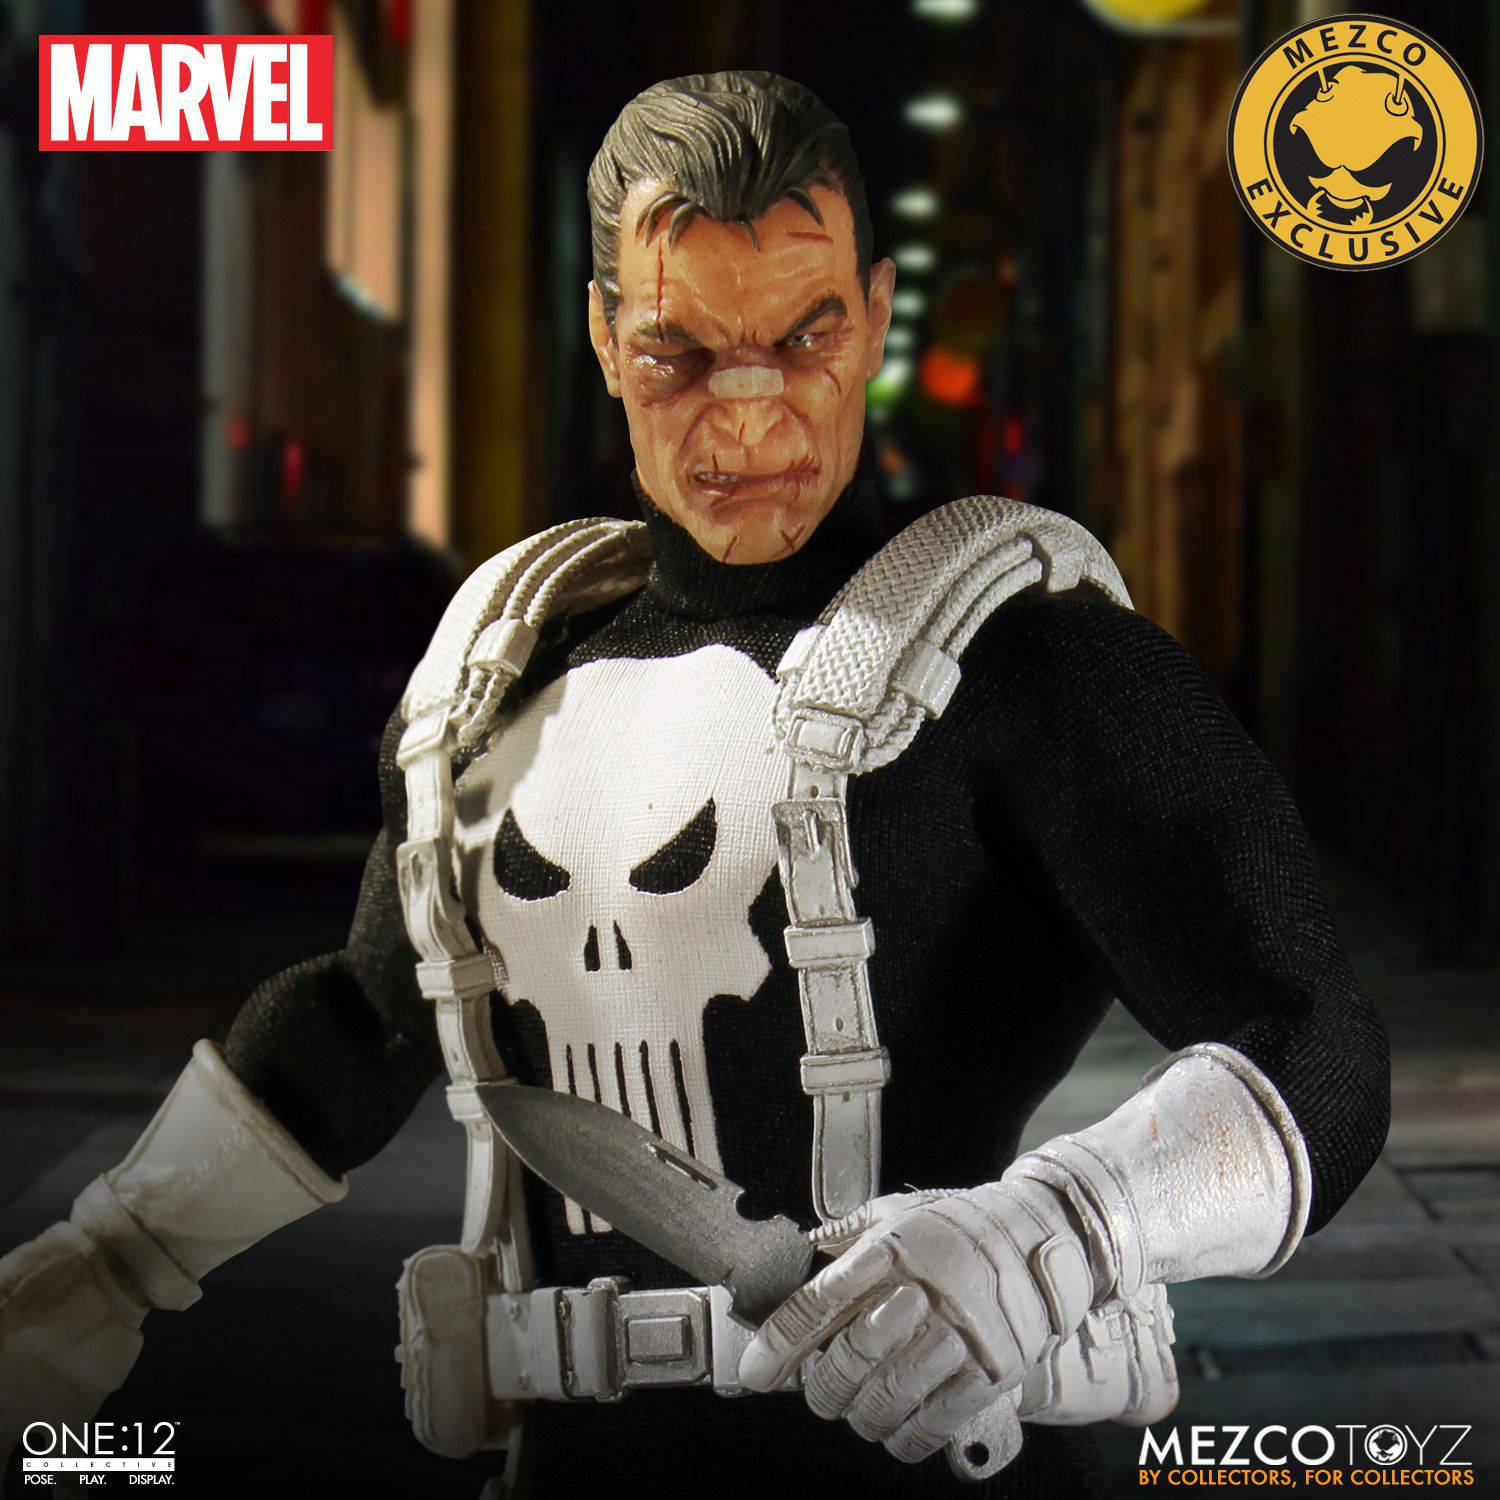 Punisher Mezco One12 Figure Up For Pre Order